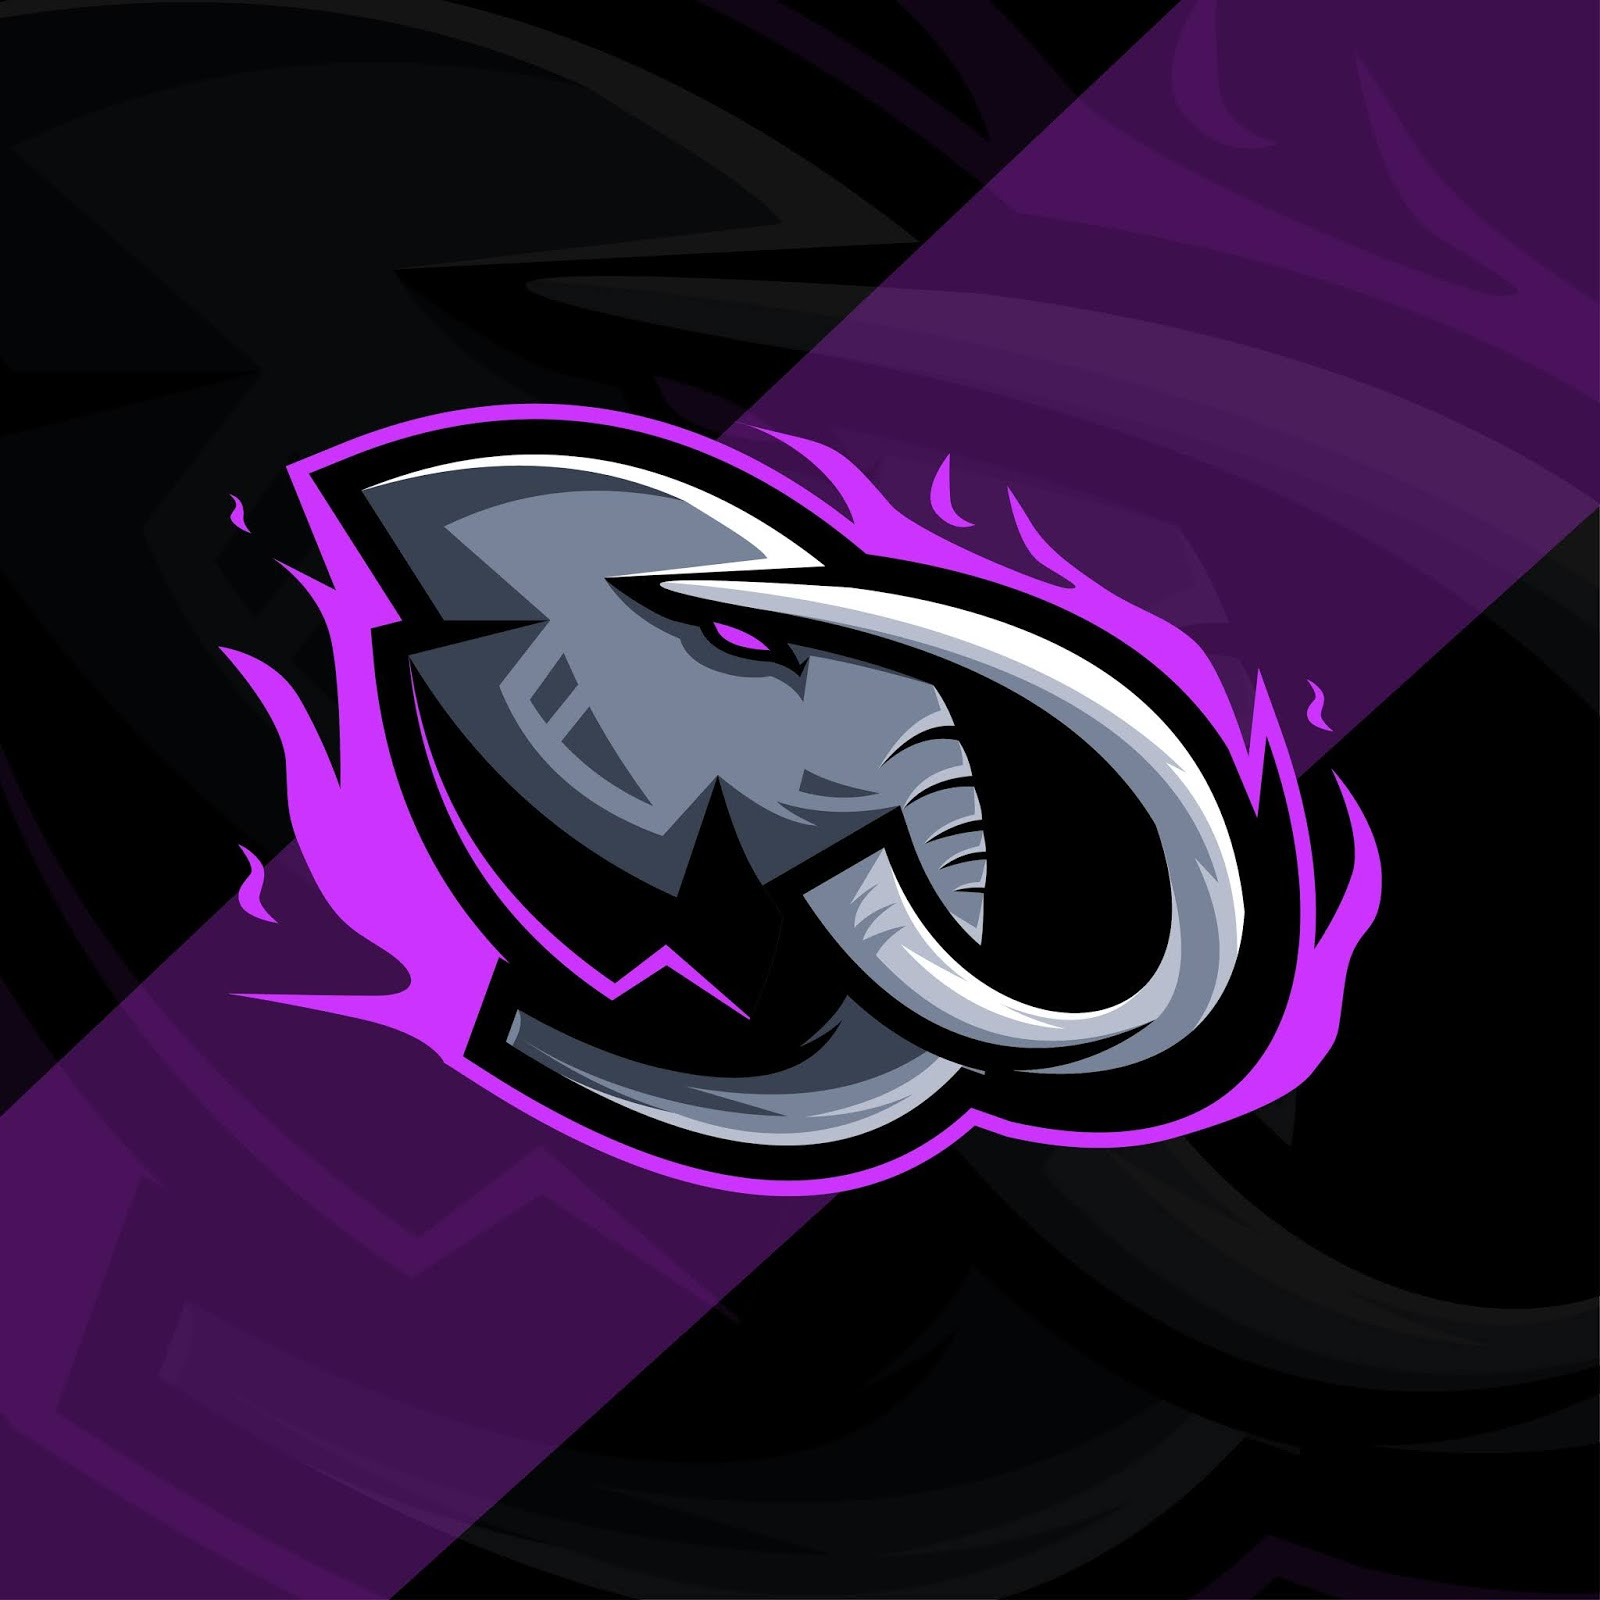 Head Elephant Mascot Logo Esport Design Free Download Vector CDR, AI, EPS and PNG Formats